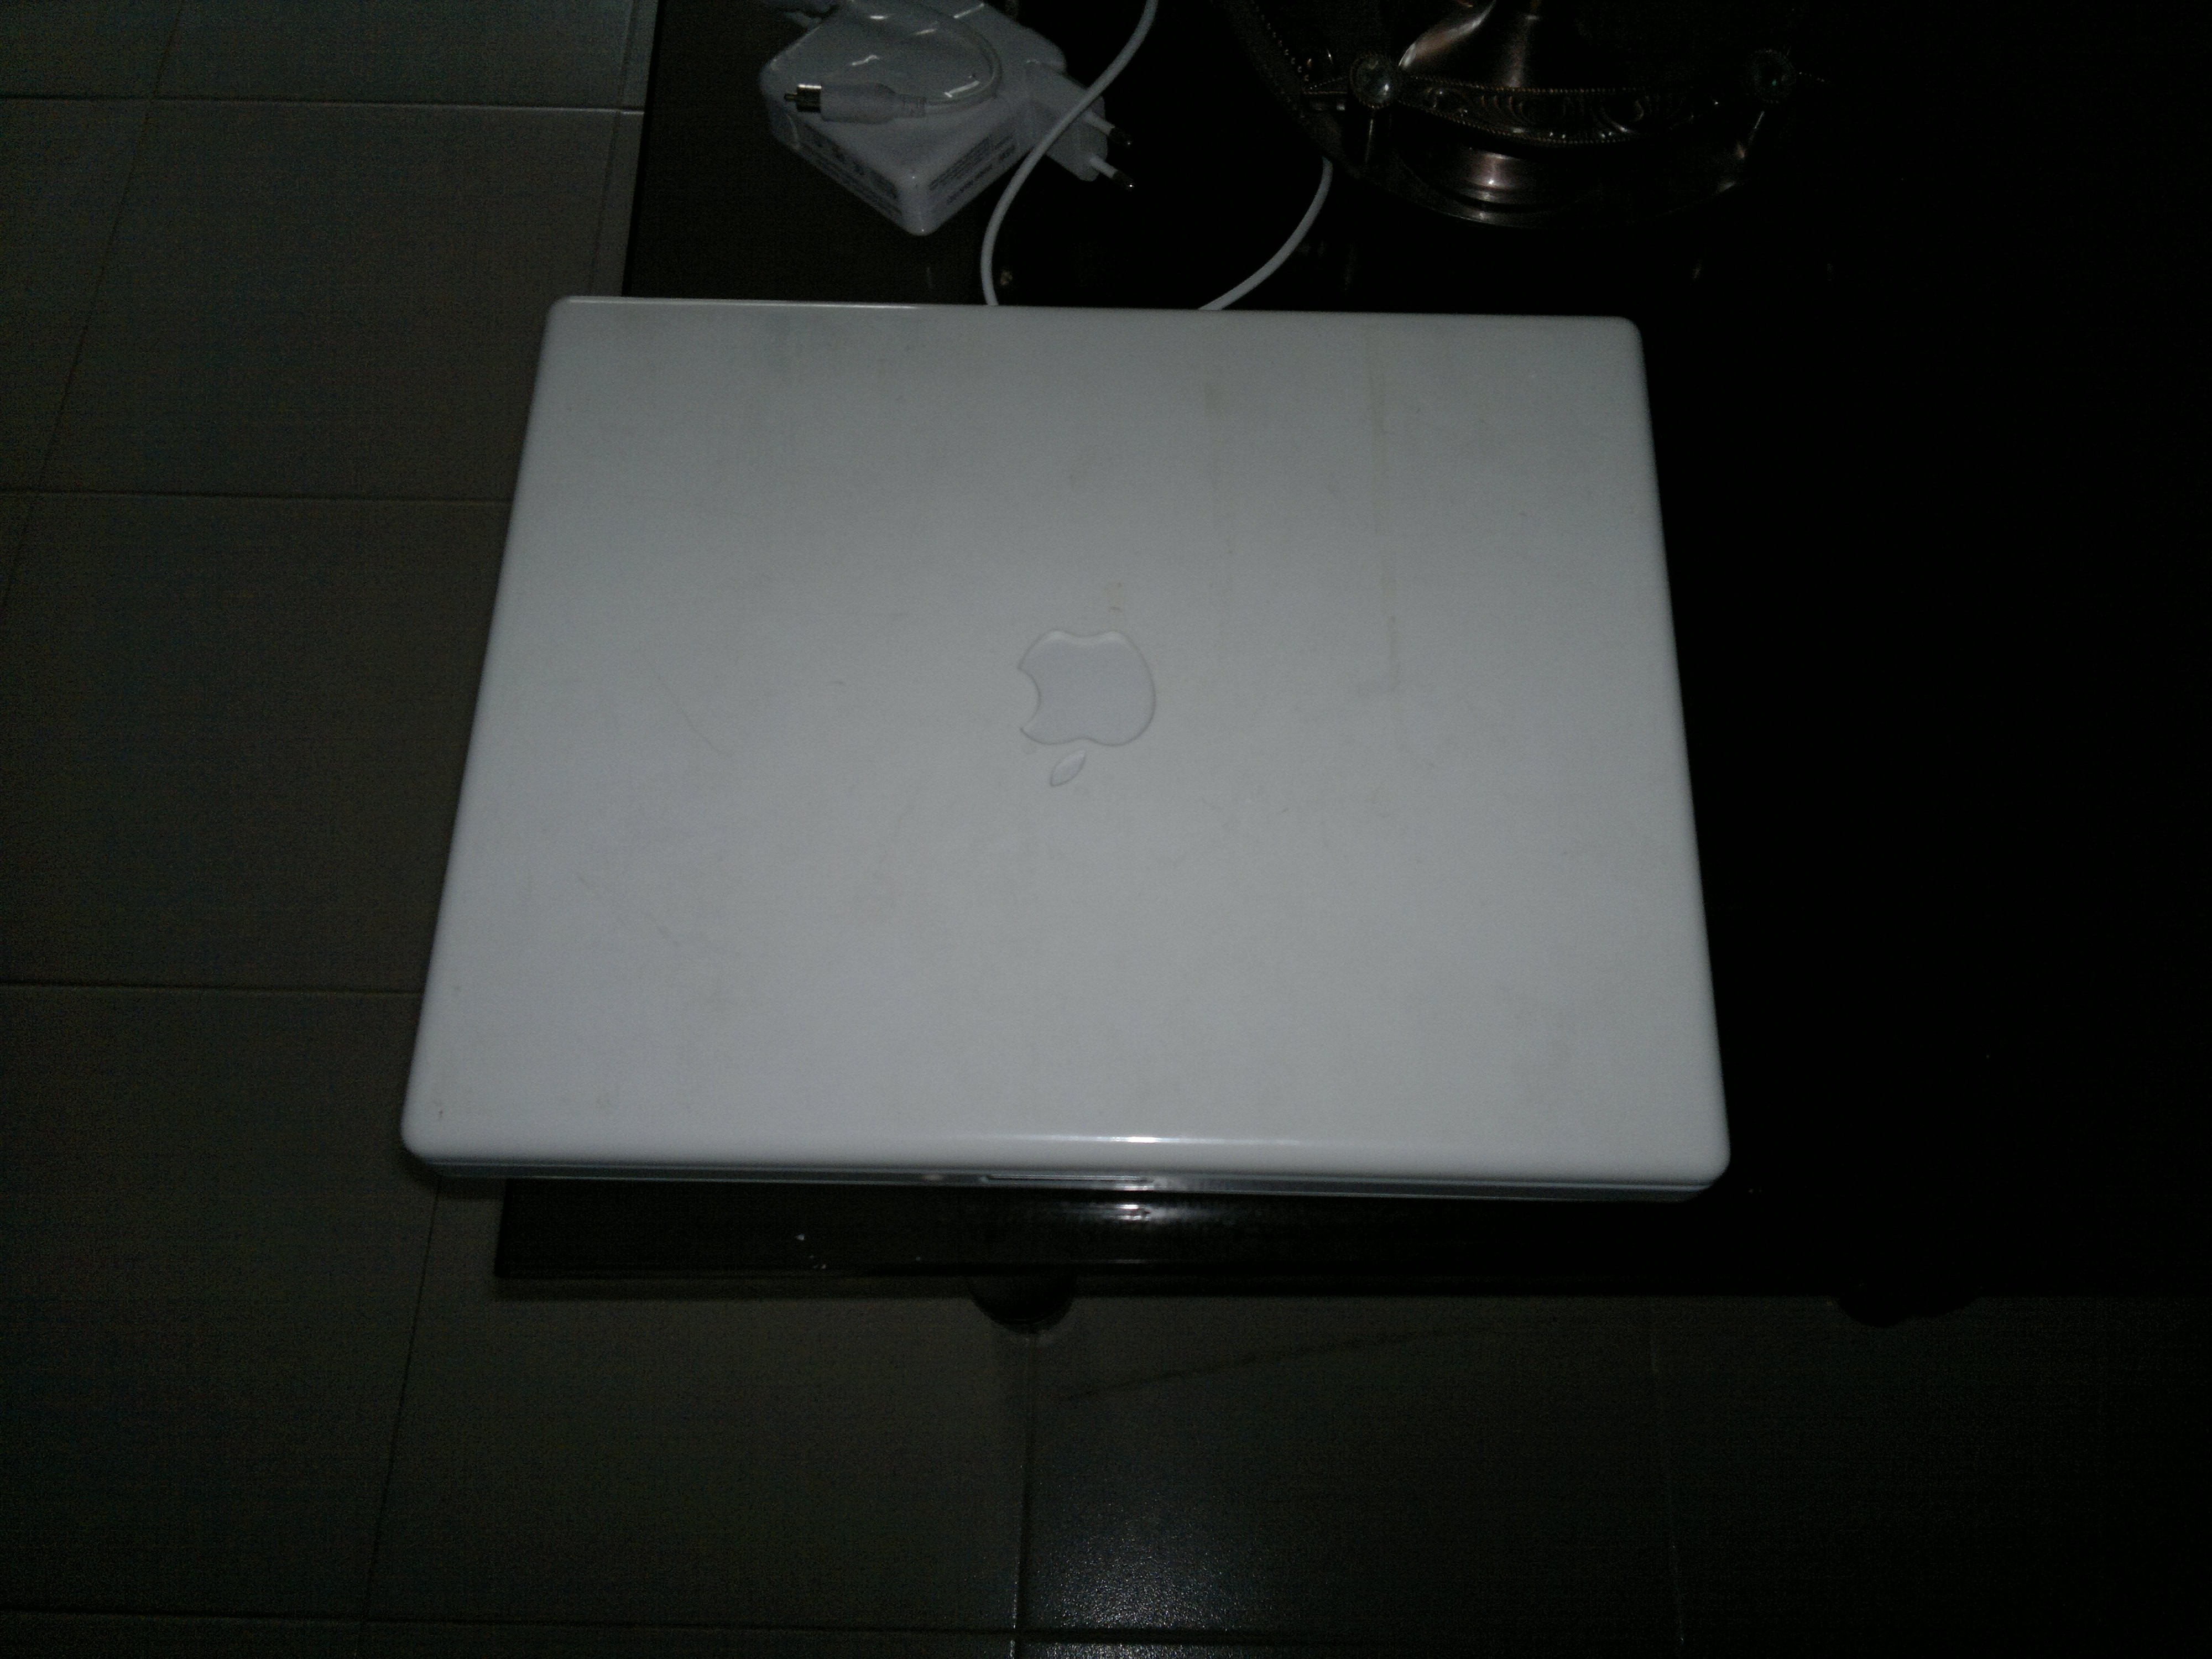 Vlc Player For Mac Ibook G4